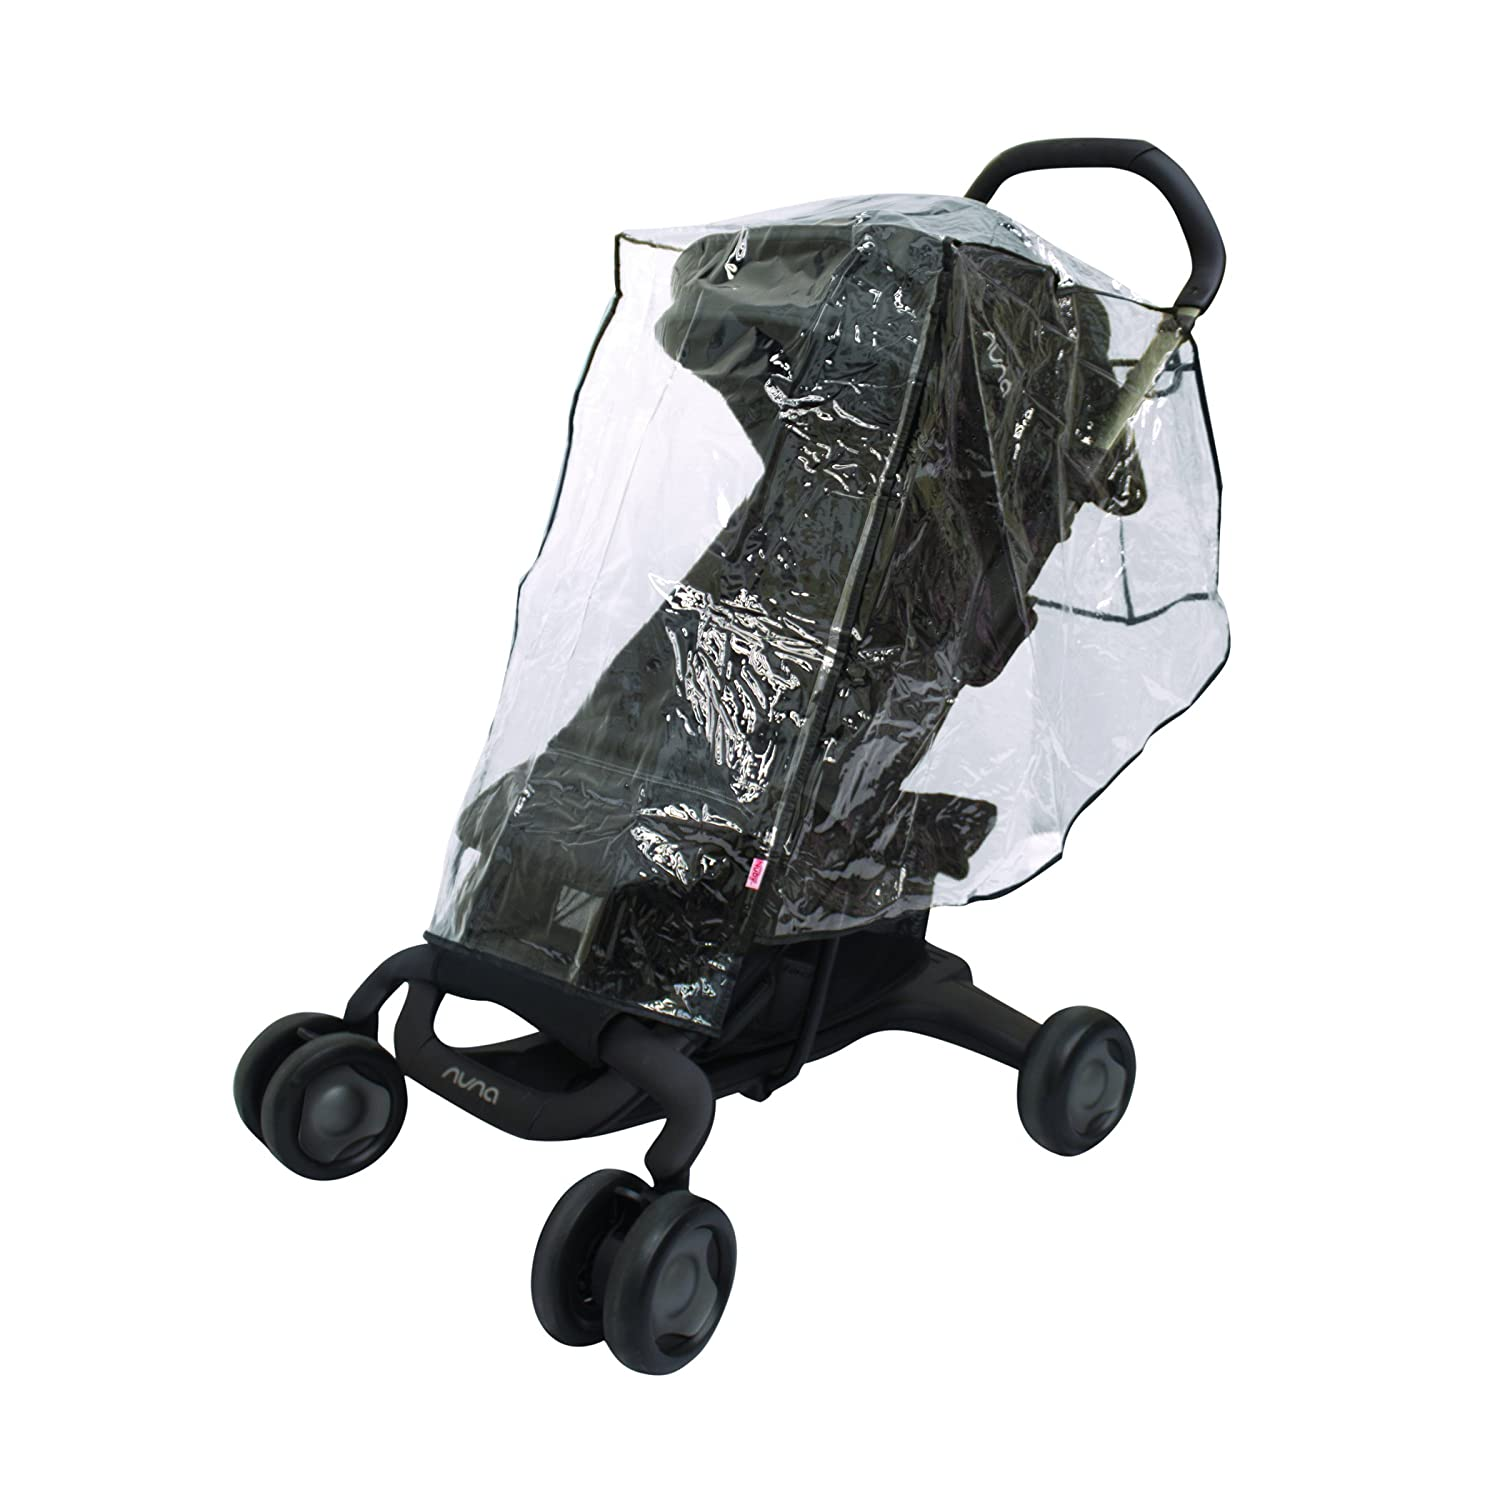 Nuby Stroller Weather Shield, Clear N120011P